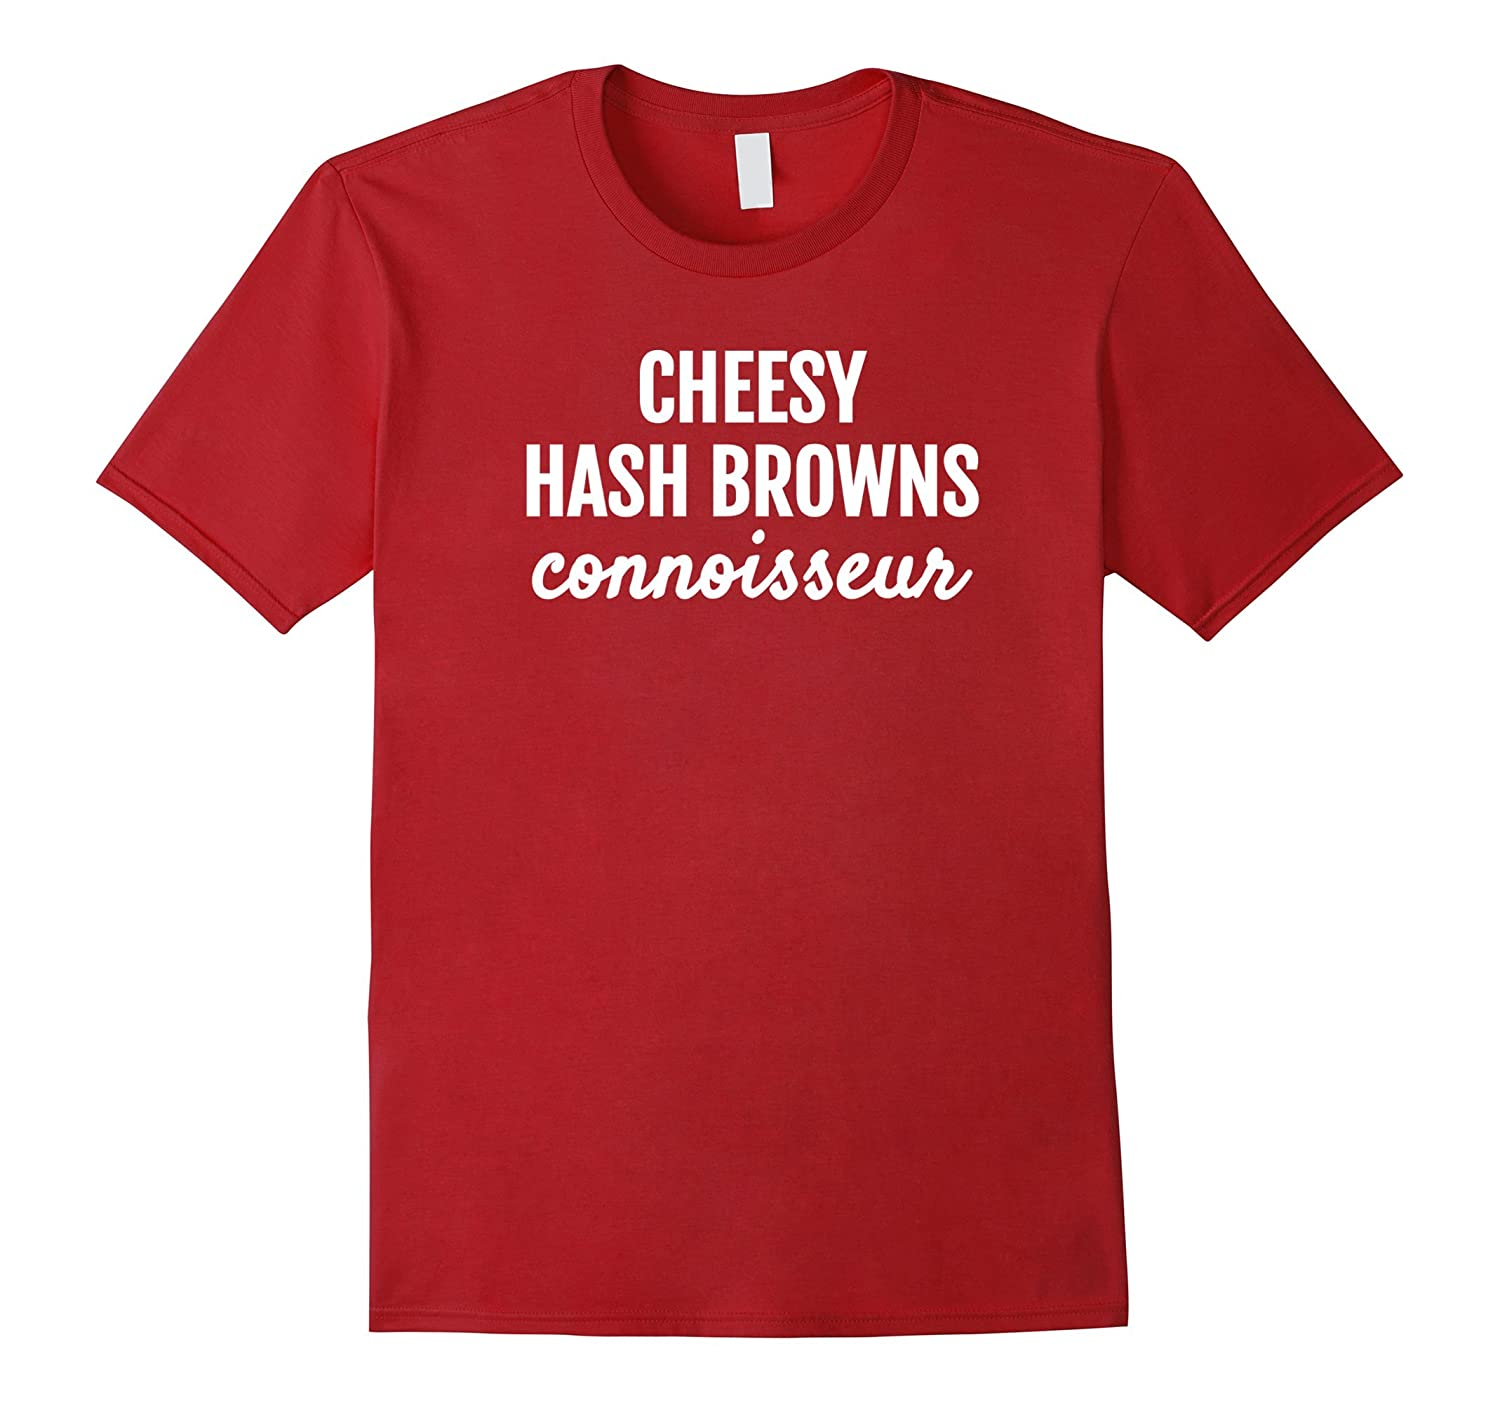 CHEESY HASH BROWNS CONNOISSEUR FUN FOOD LOVERS T SHIRT